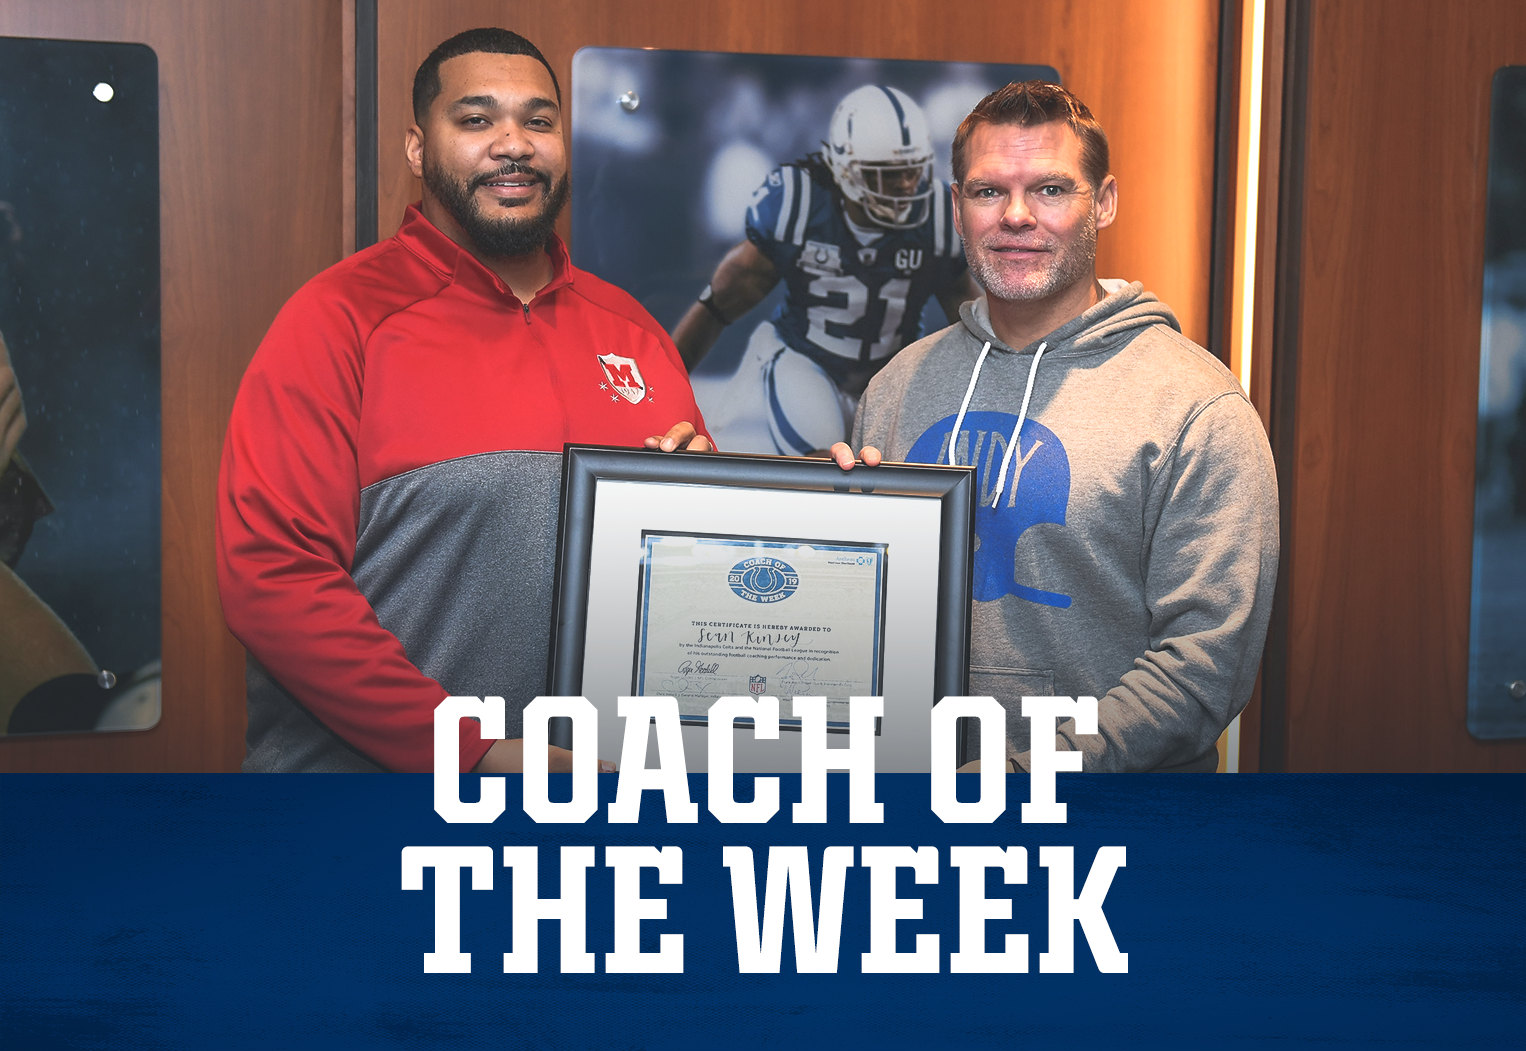 Indianapolis Colts High School Football Coach Of The Week